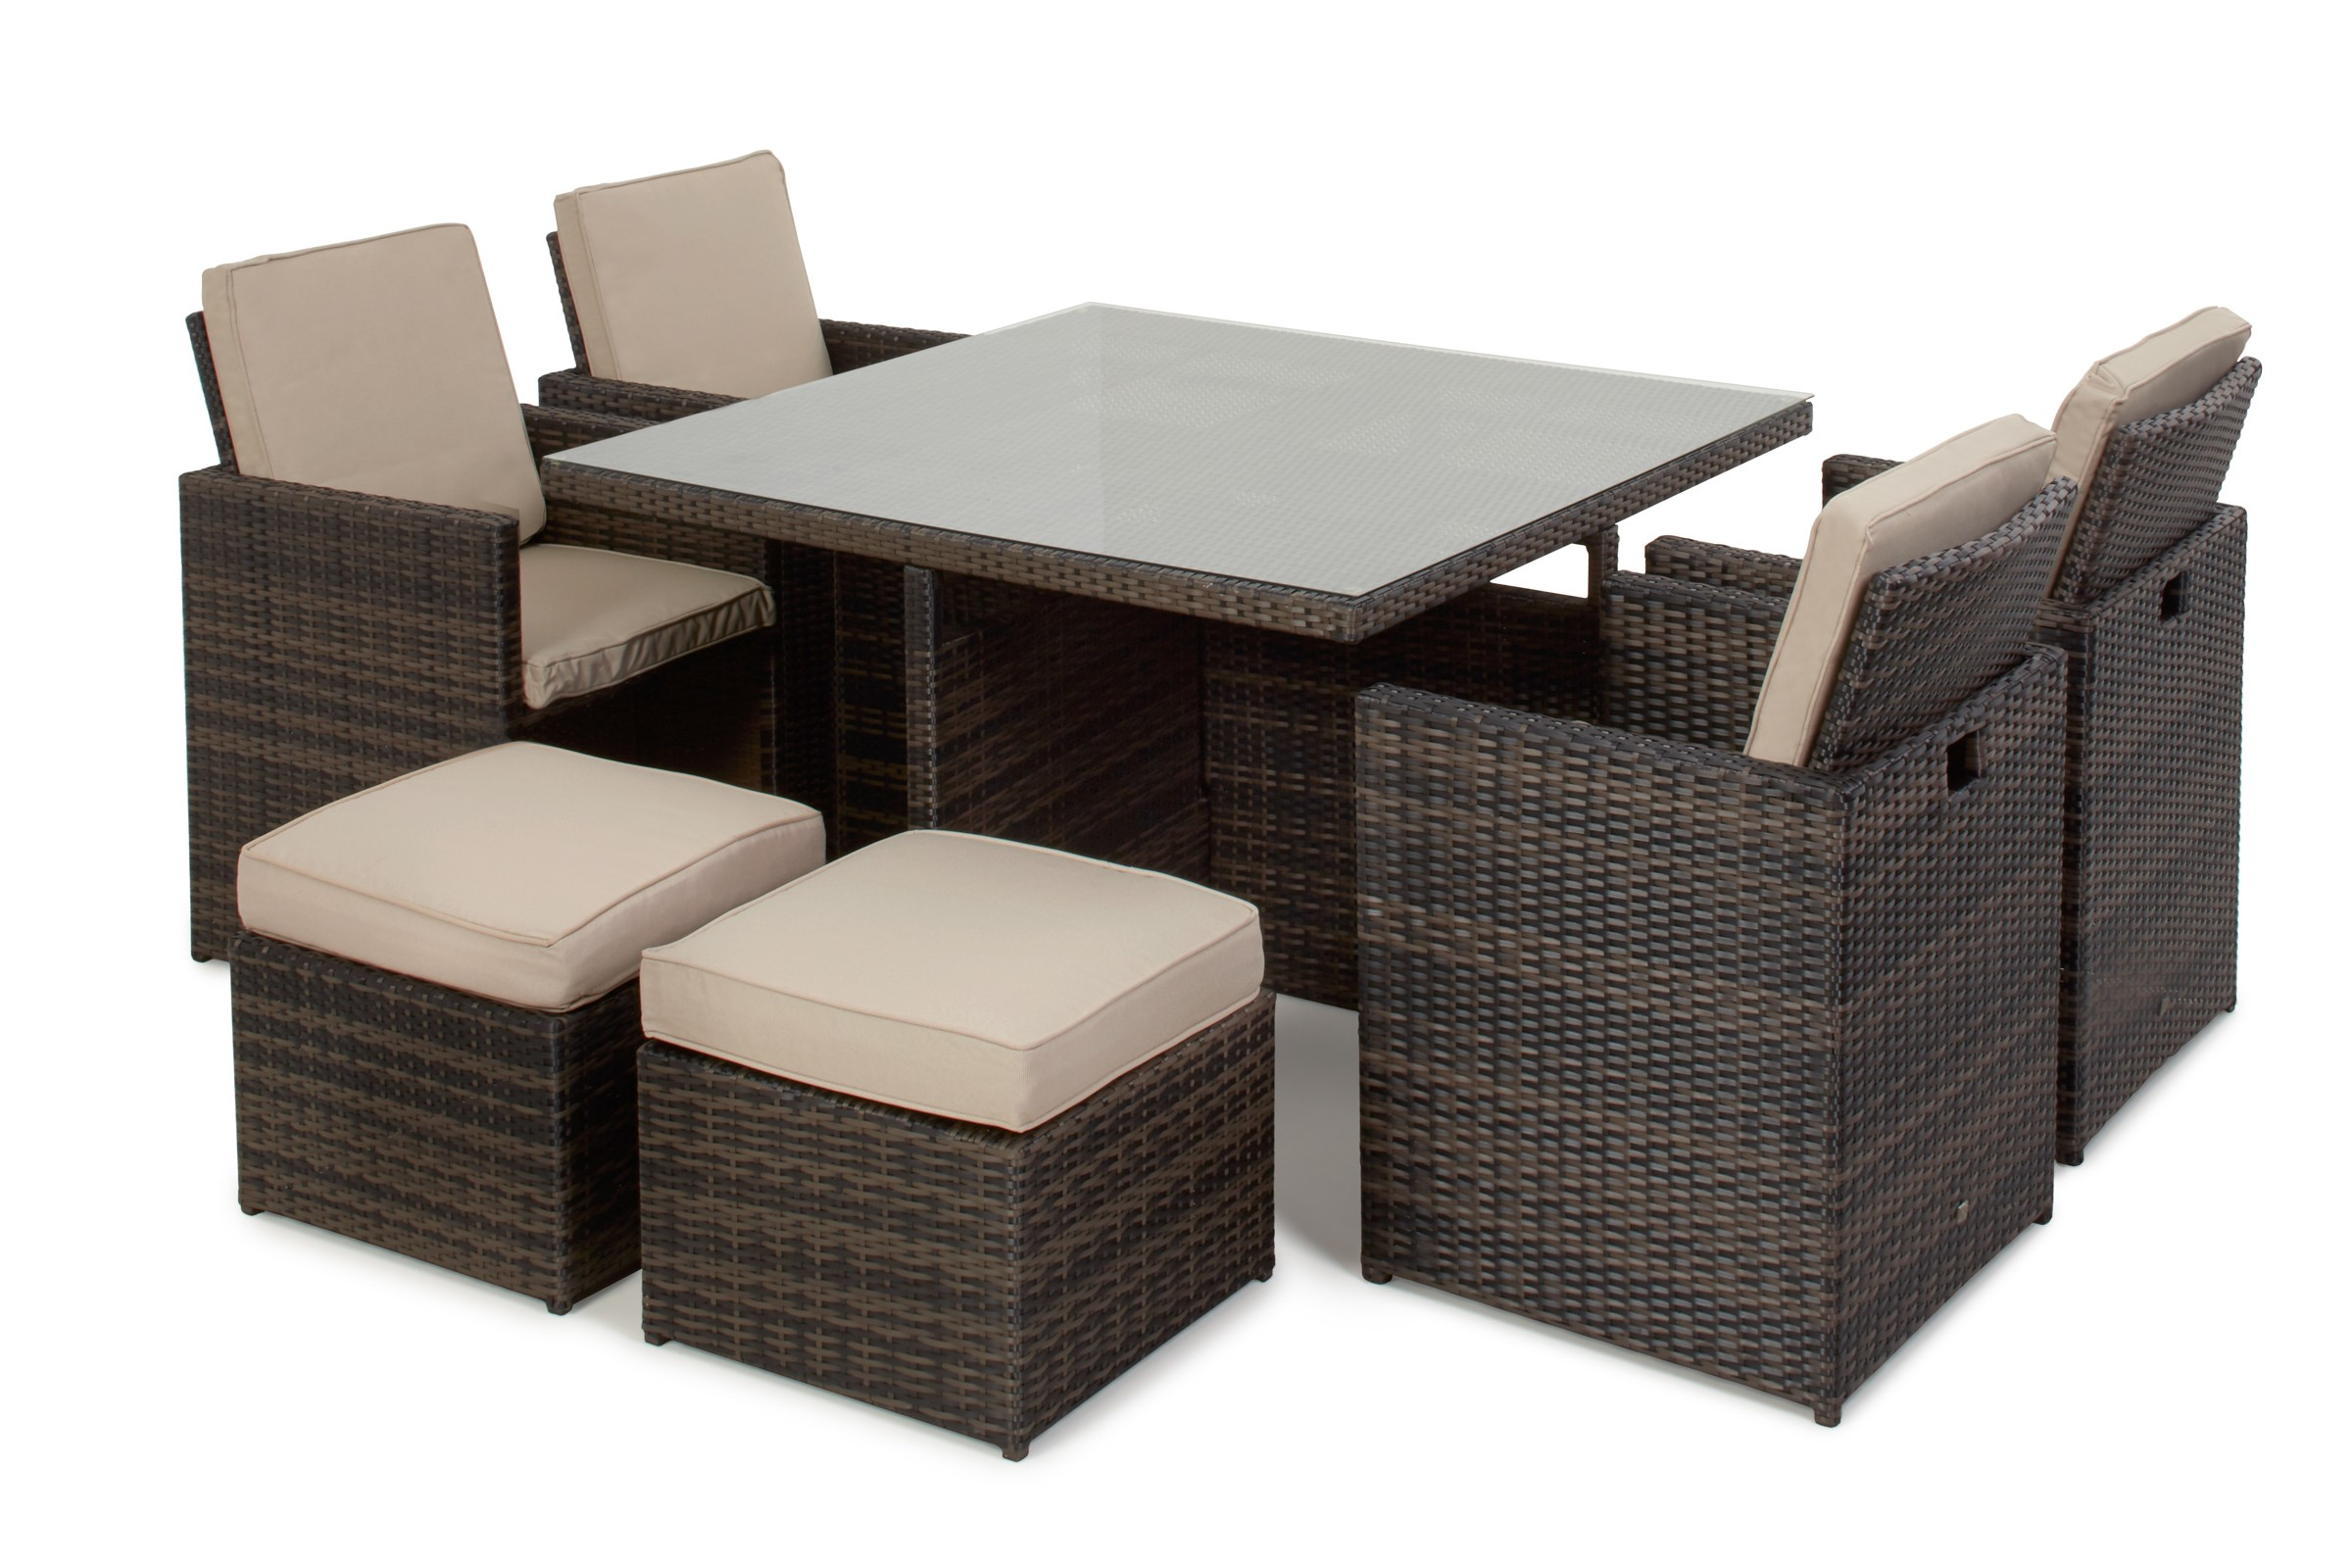 Rattan Corner Sofa Set Uk Maze Rattan 5 Piece Garden Furniture Cube Set | Rattan